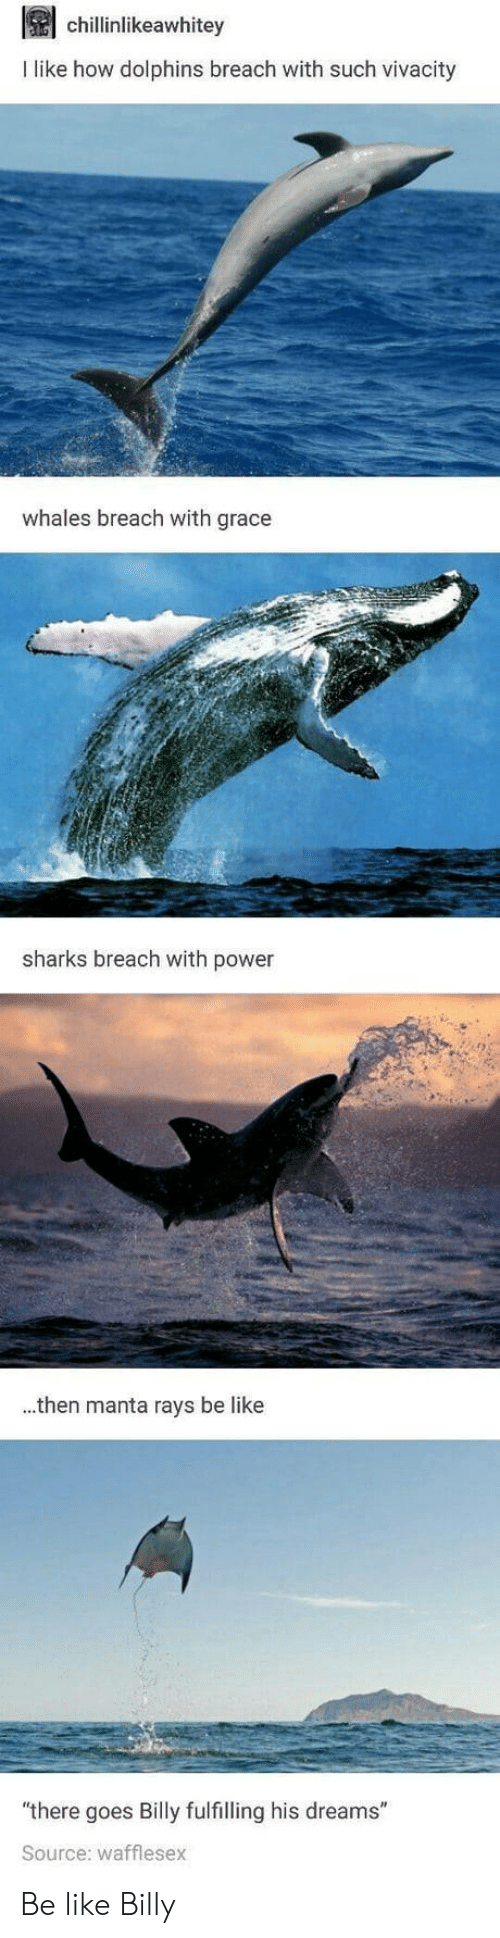 """Be Like, Dolphins, and Power: chillinlikeawhitey  I like how dolphins breach with such vivacity  whales breach with grace  sharks breach with power  ..then manta rays be like  """"there goes Billy fulfilling his dreams""""  Source: wafflesex Be like Billy"""